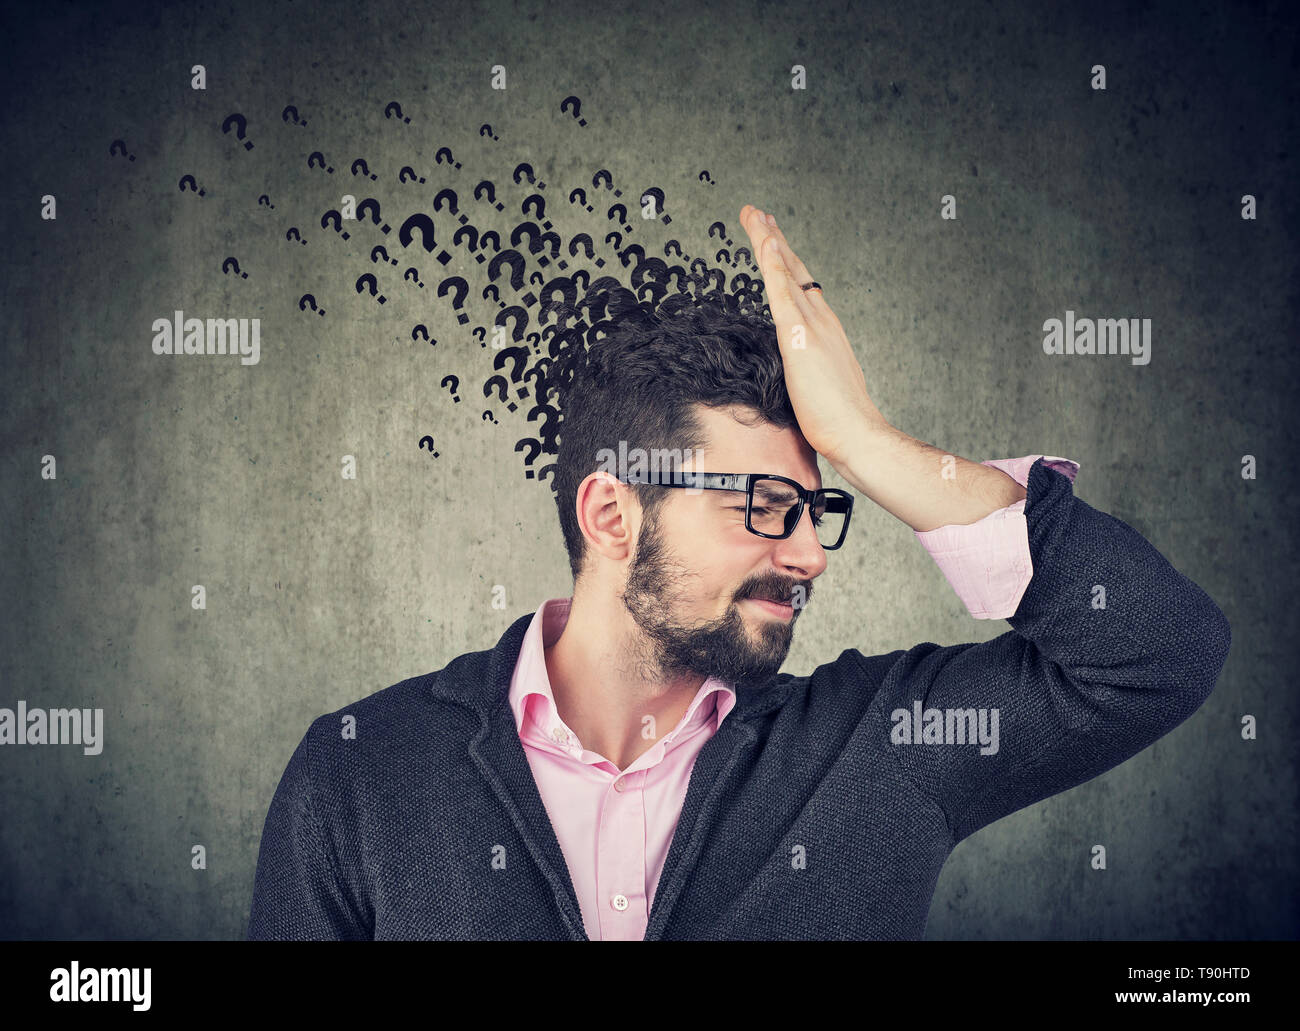 Man with worried stressed face expression and many questions - Stock Image